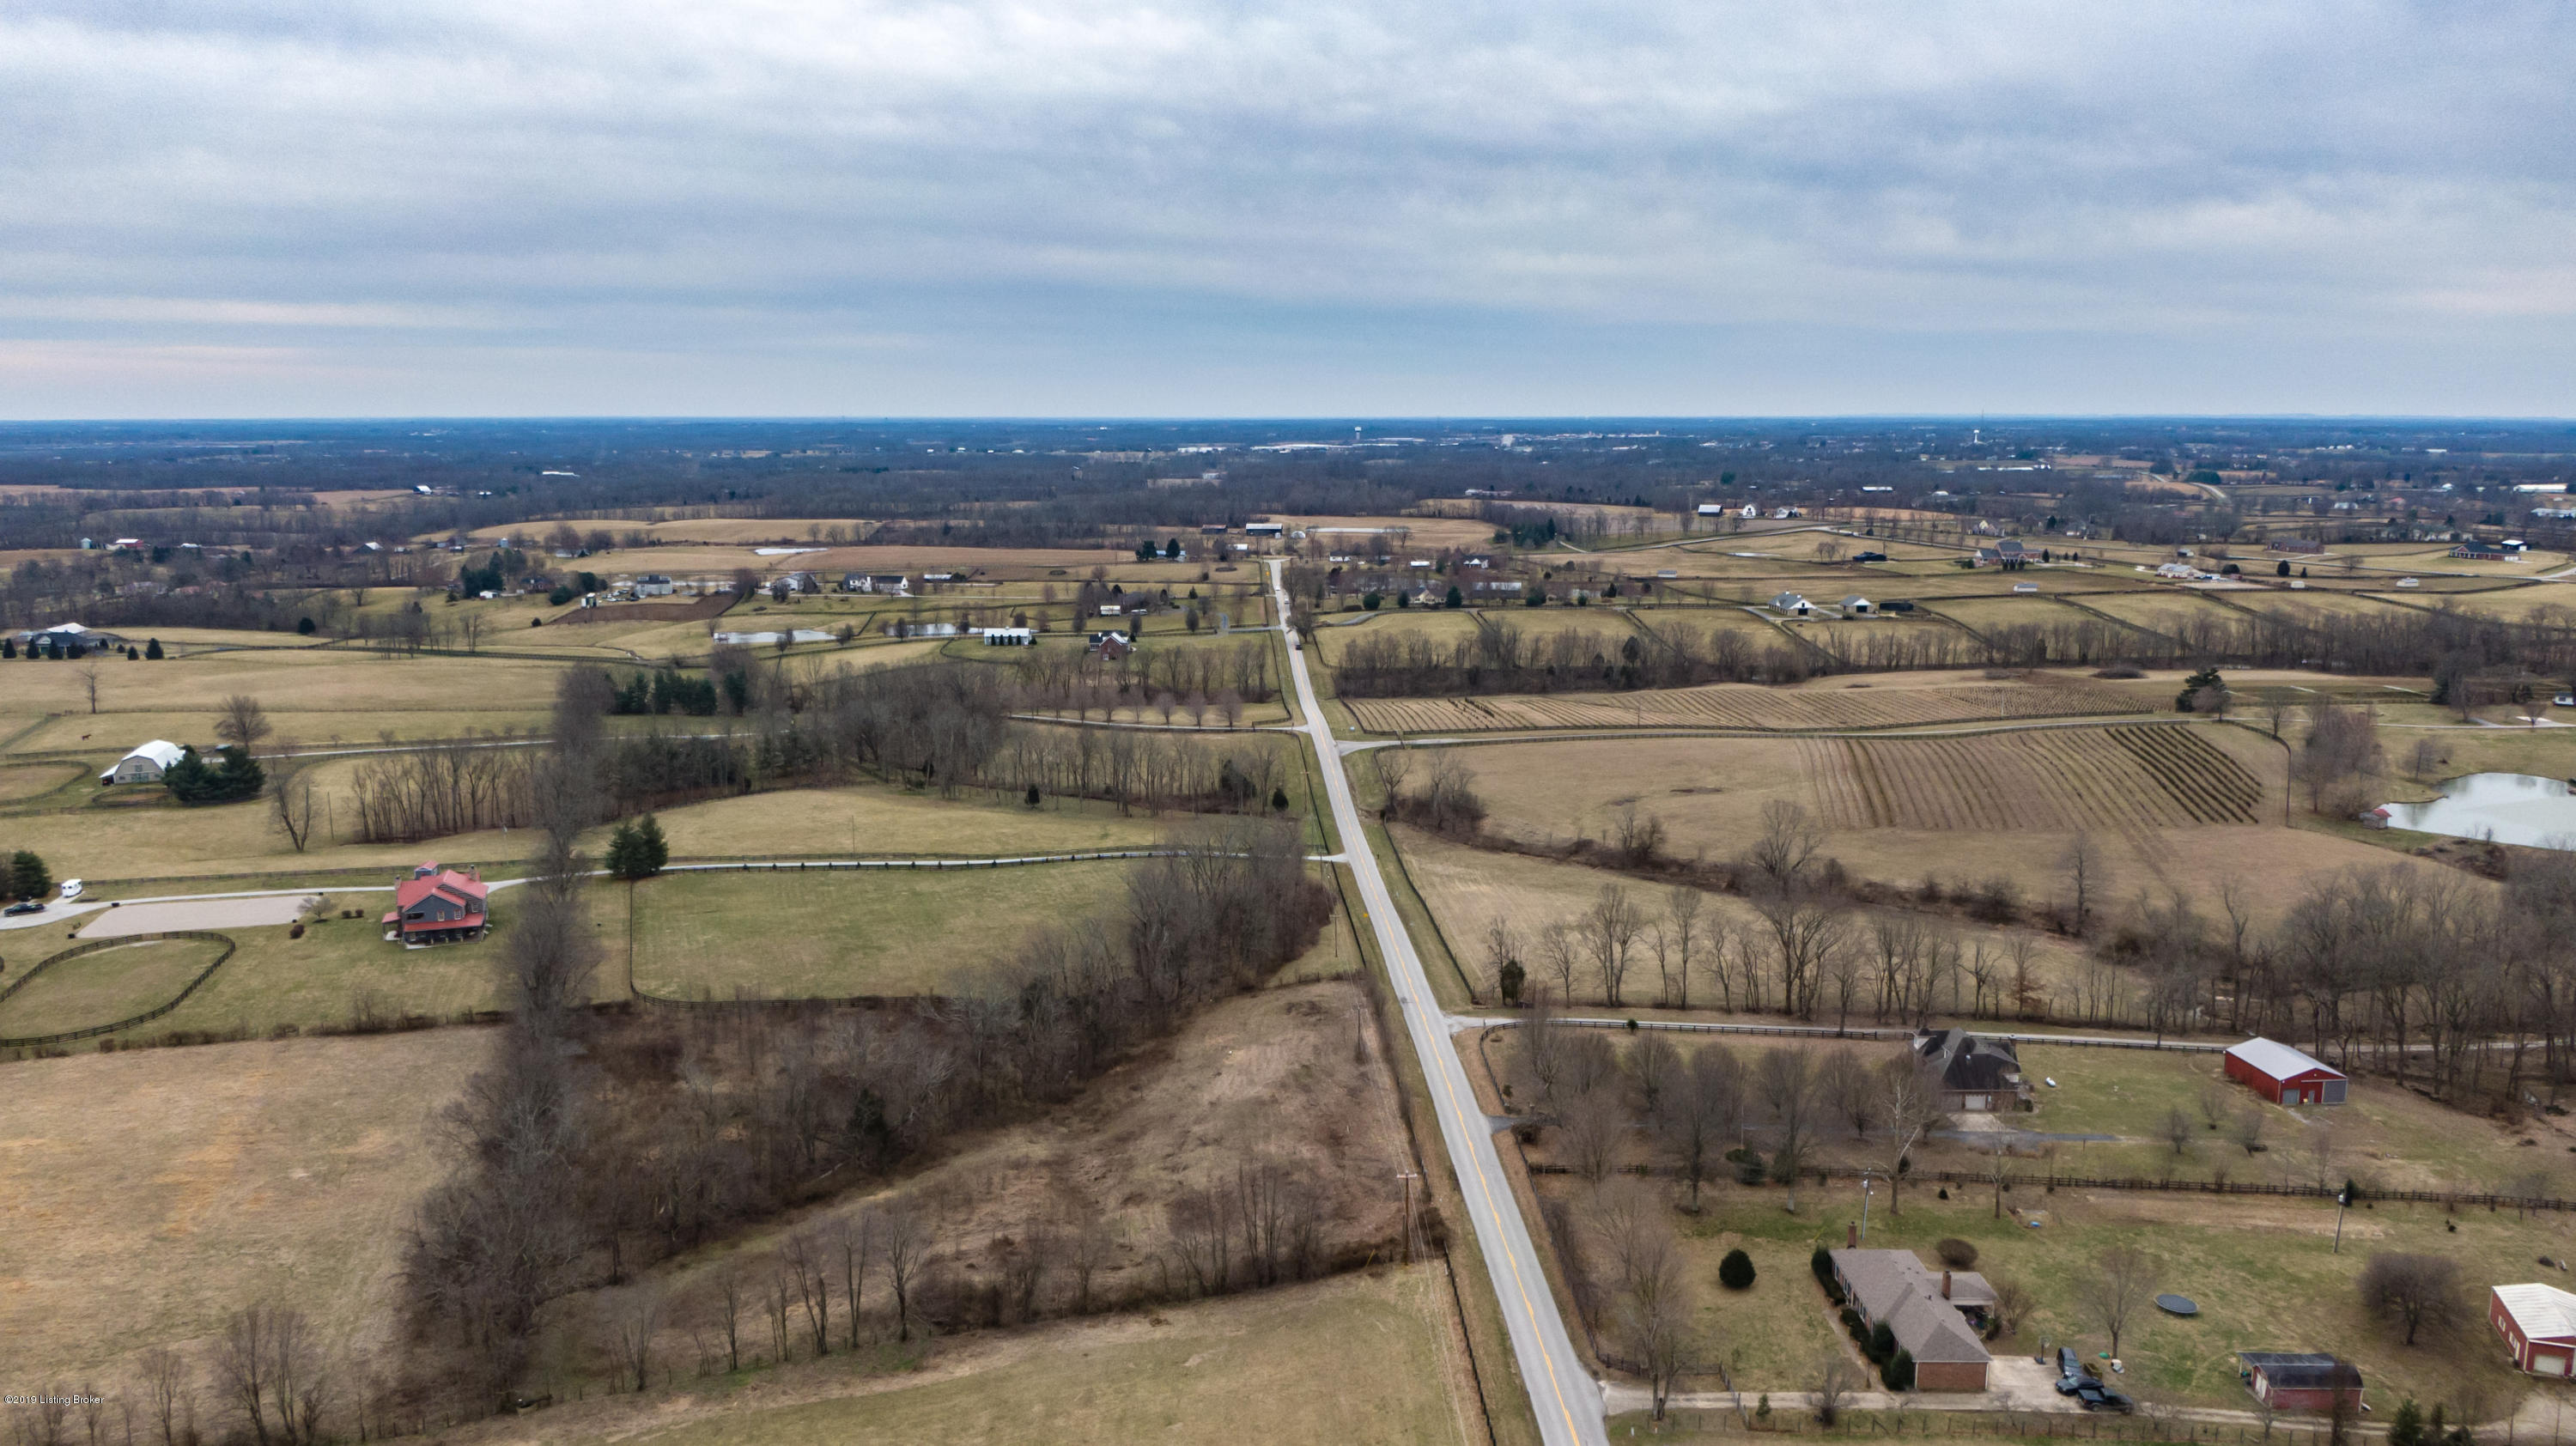 3160 Todds Point Rd, Simpsonville, Kentucky 40067, 3 Bedrooms Bedrooms, 7 Rooms Rooms,3 BathroomsBathrooms,Residential,For Sale,Todds Point,1525042